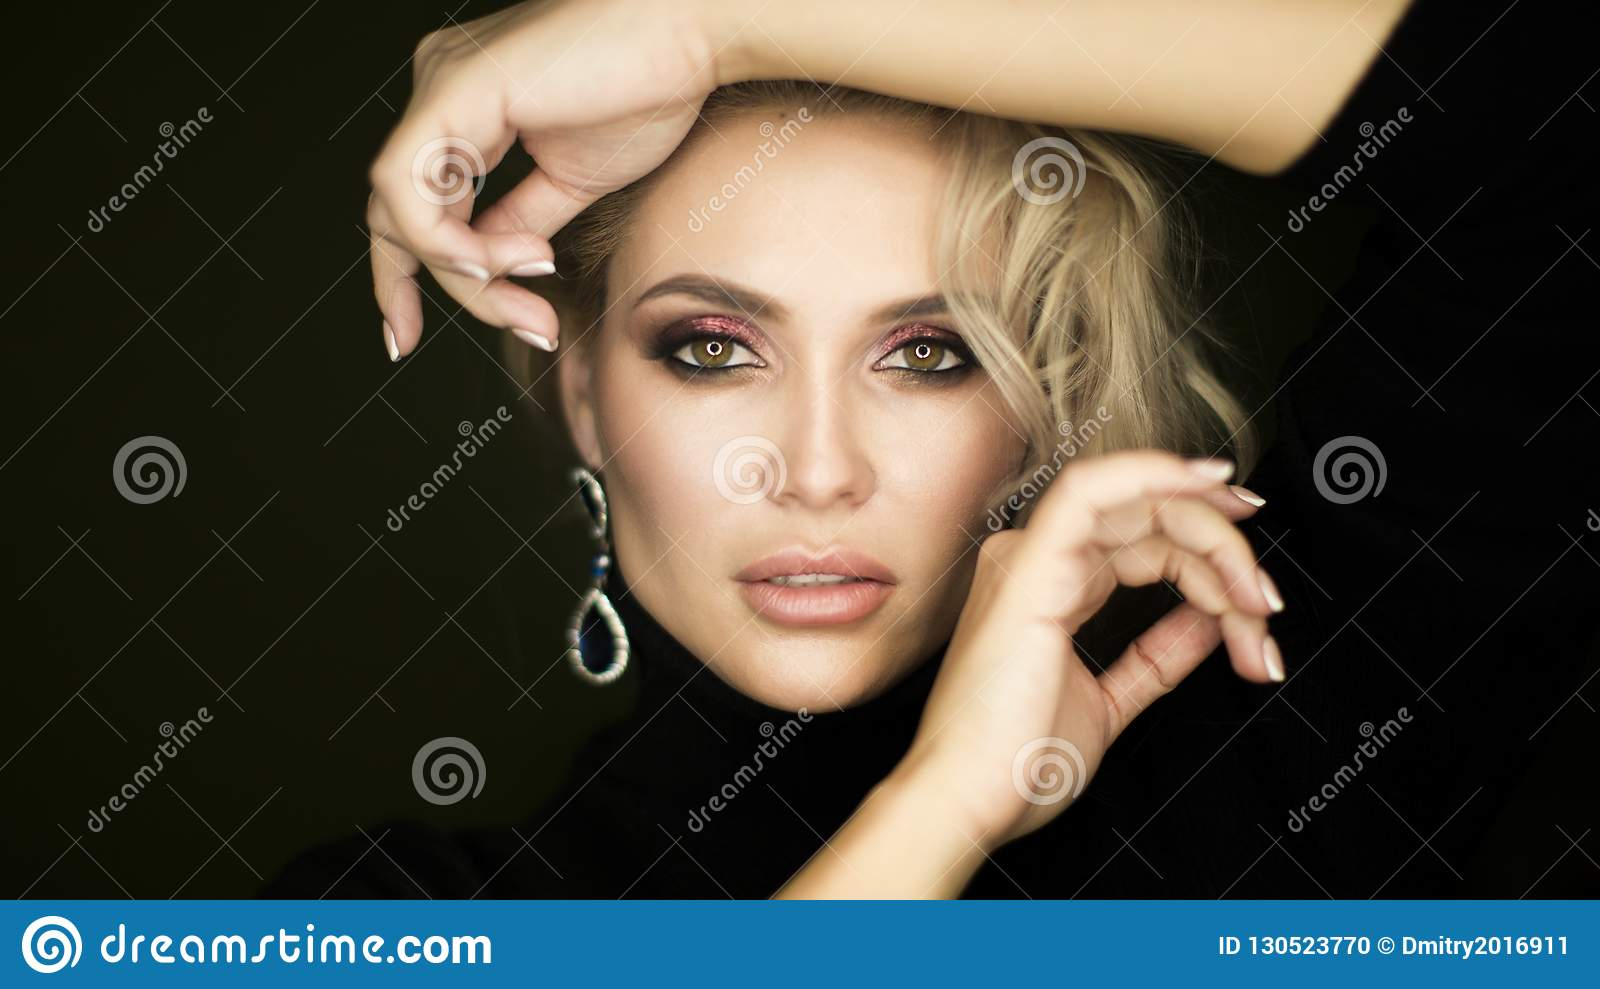 Beauty face of young caucasian model girl with natural nude makeup and hand near clean skin. Skincare facial treatment